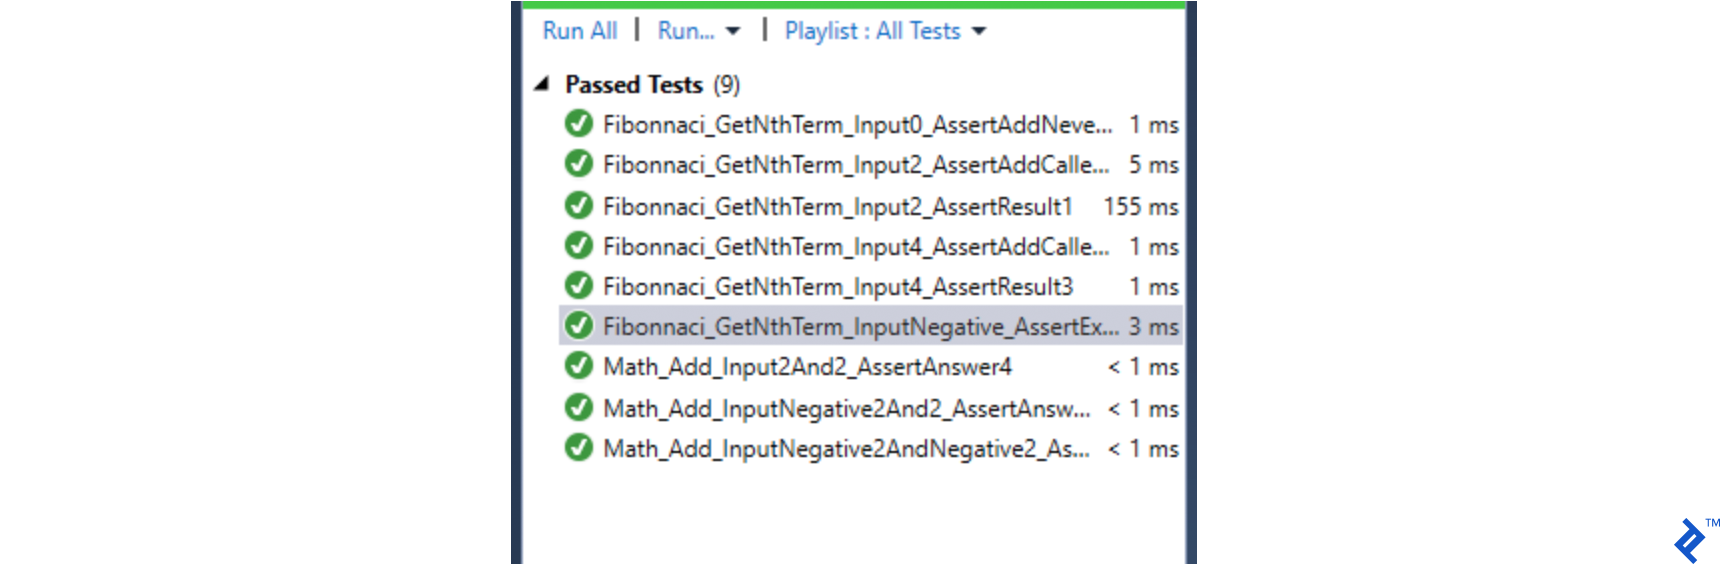 Example of a naming convention set up to easily search for a class or method within a class to be tested.